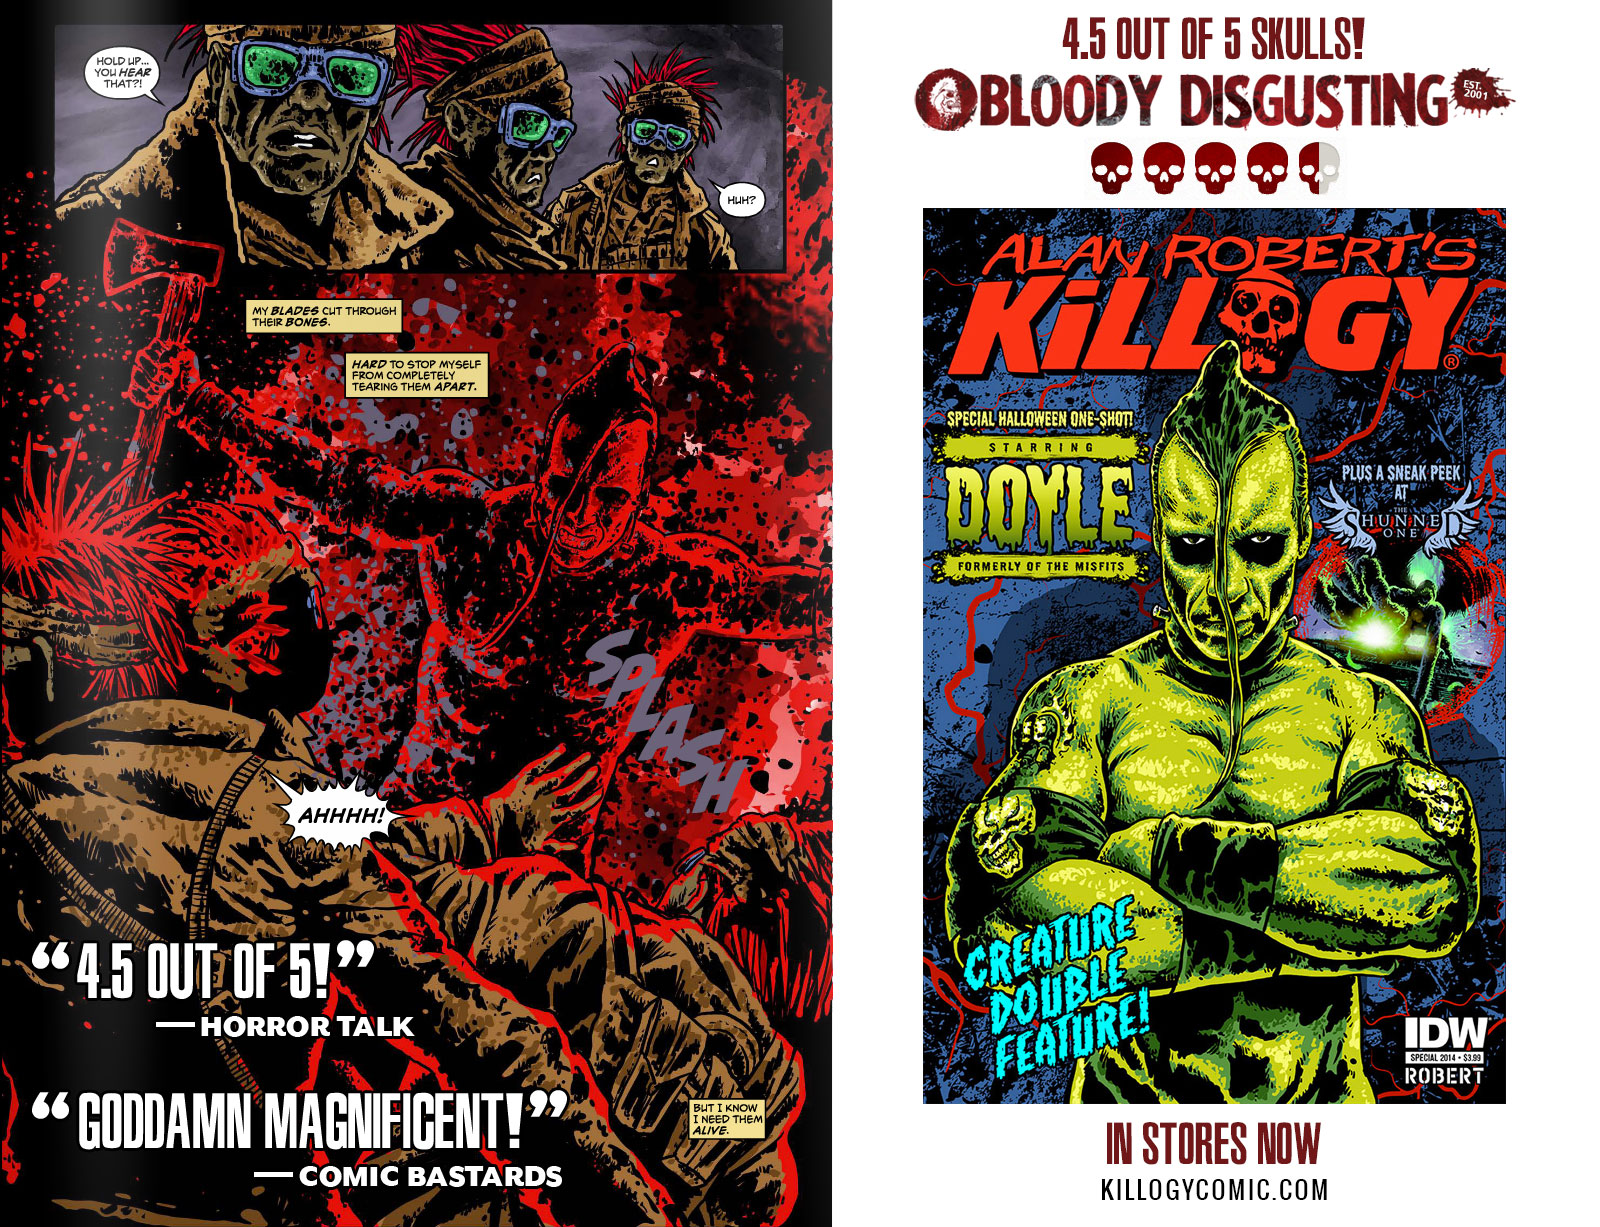 Killogy Comic Images